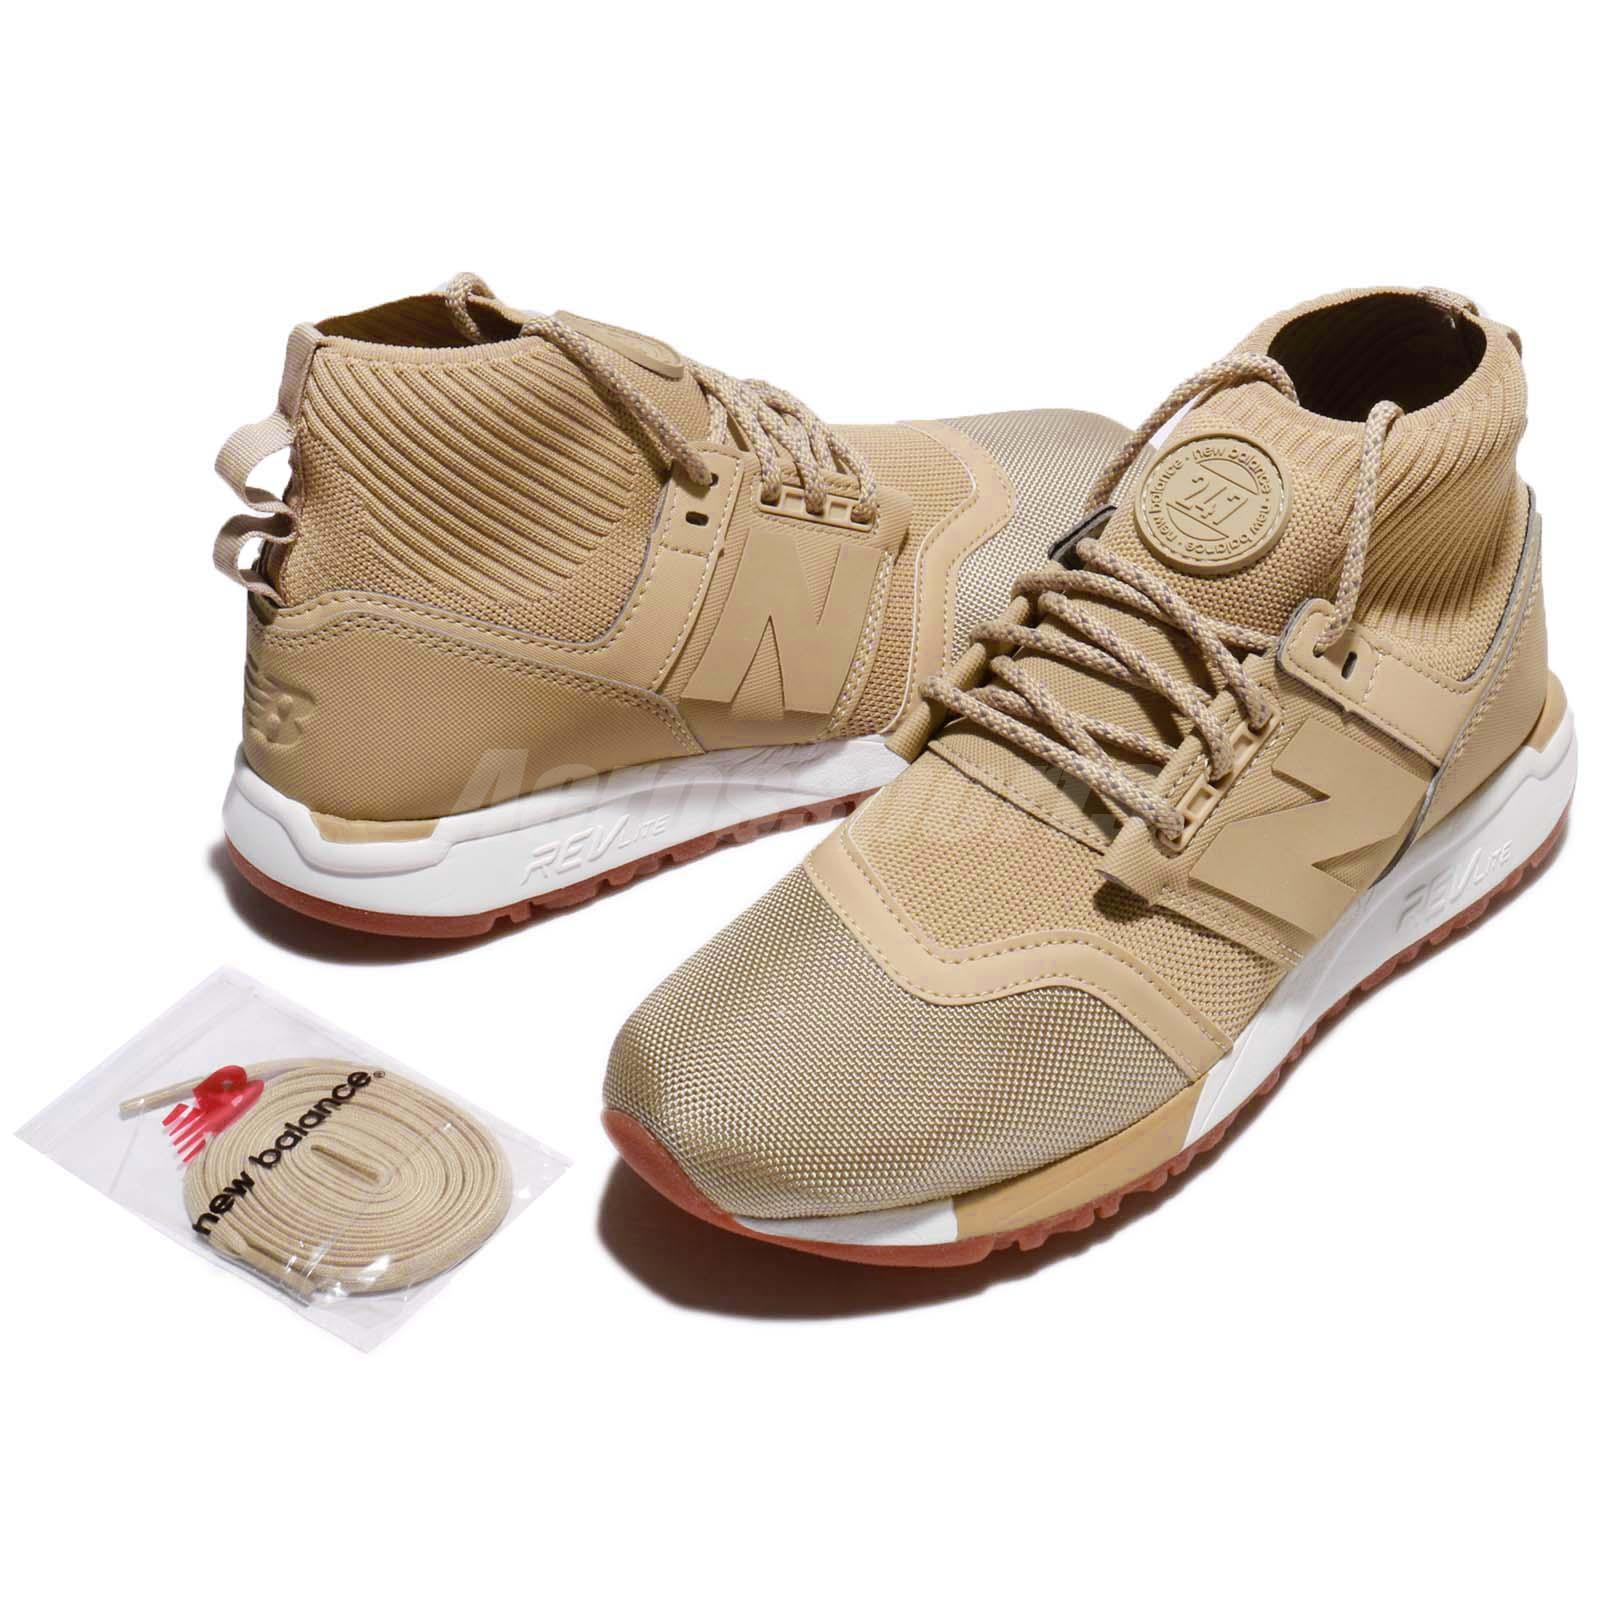 New Balance Men/'s 247 MID SPORTS STYLE Shoes Beige//white MRL247OY b